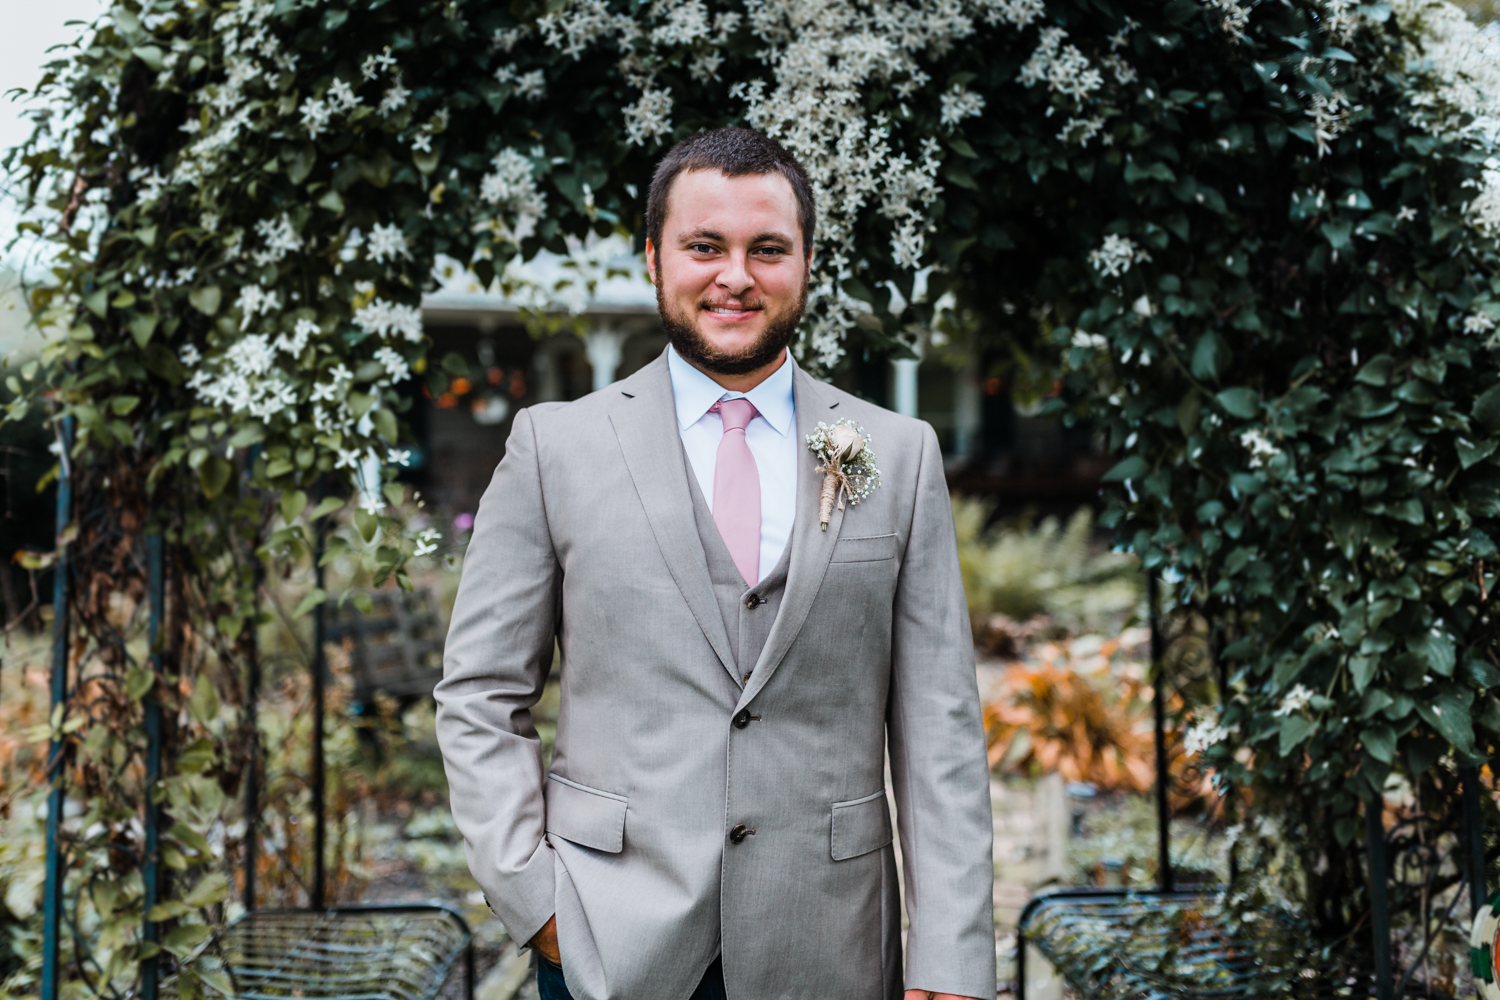 handsome groom on his wedding day